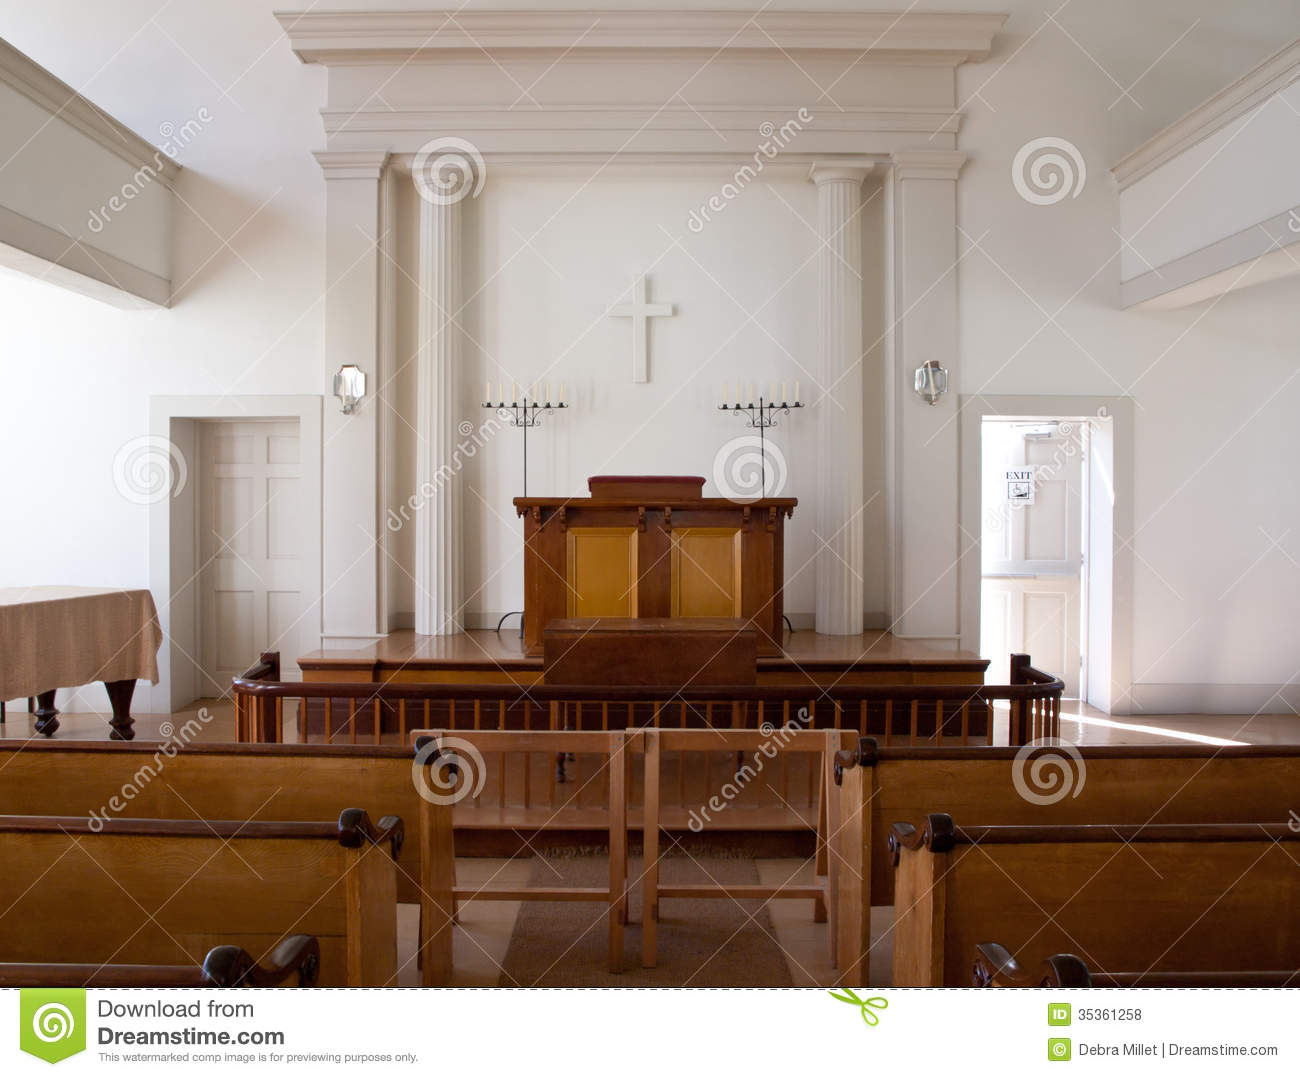 Church Interior To An Old Fashioned Simple Country Royalty Free Stock Photos